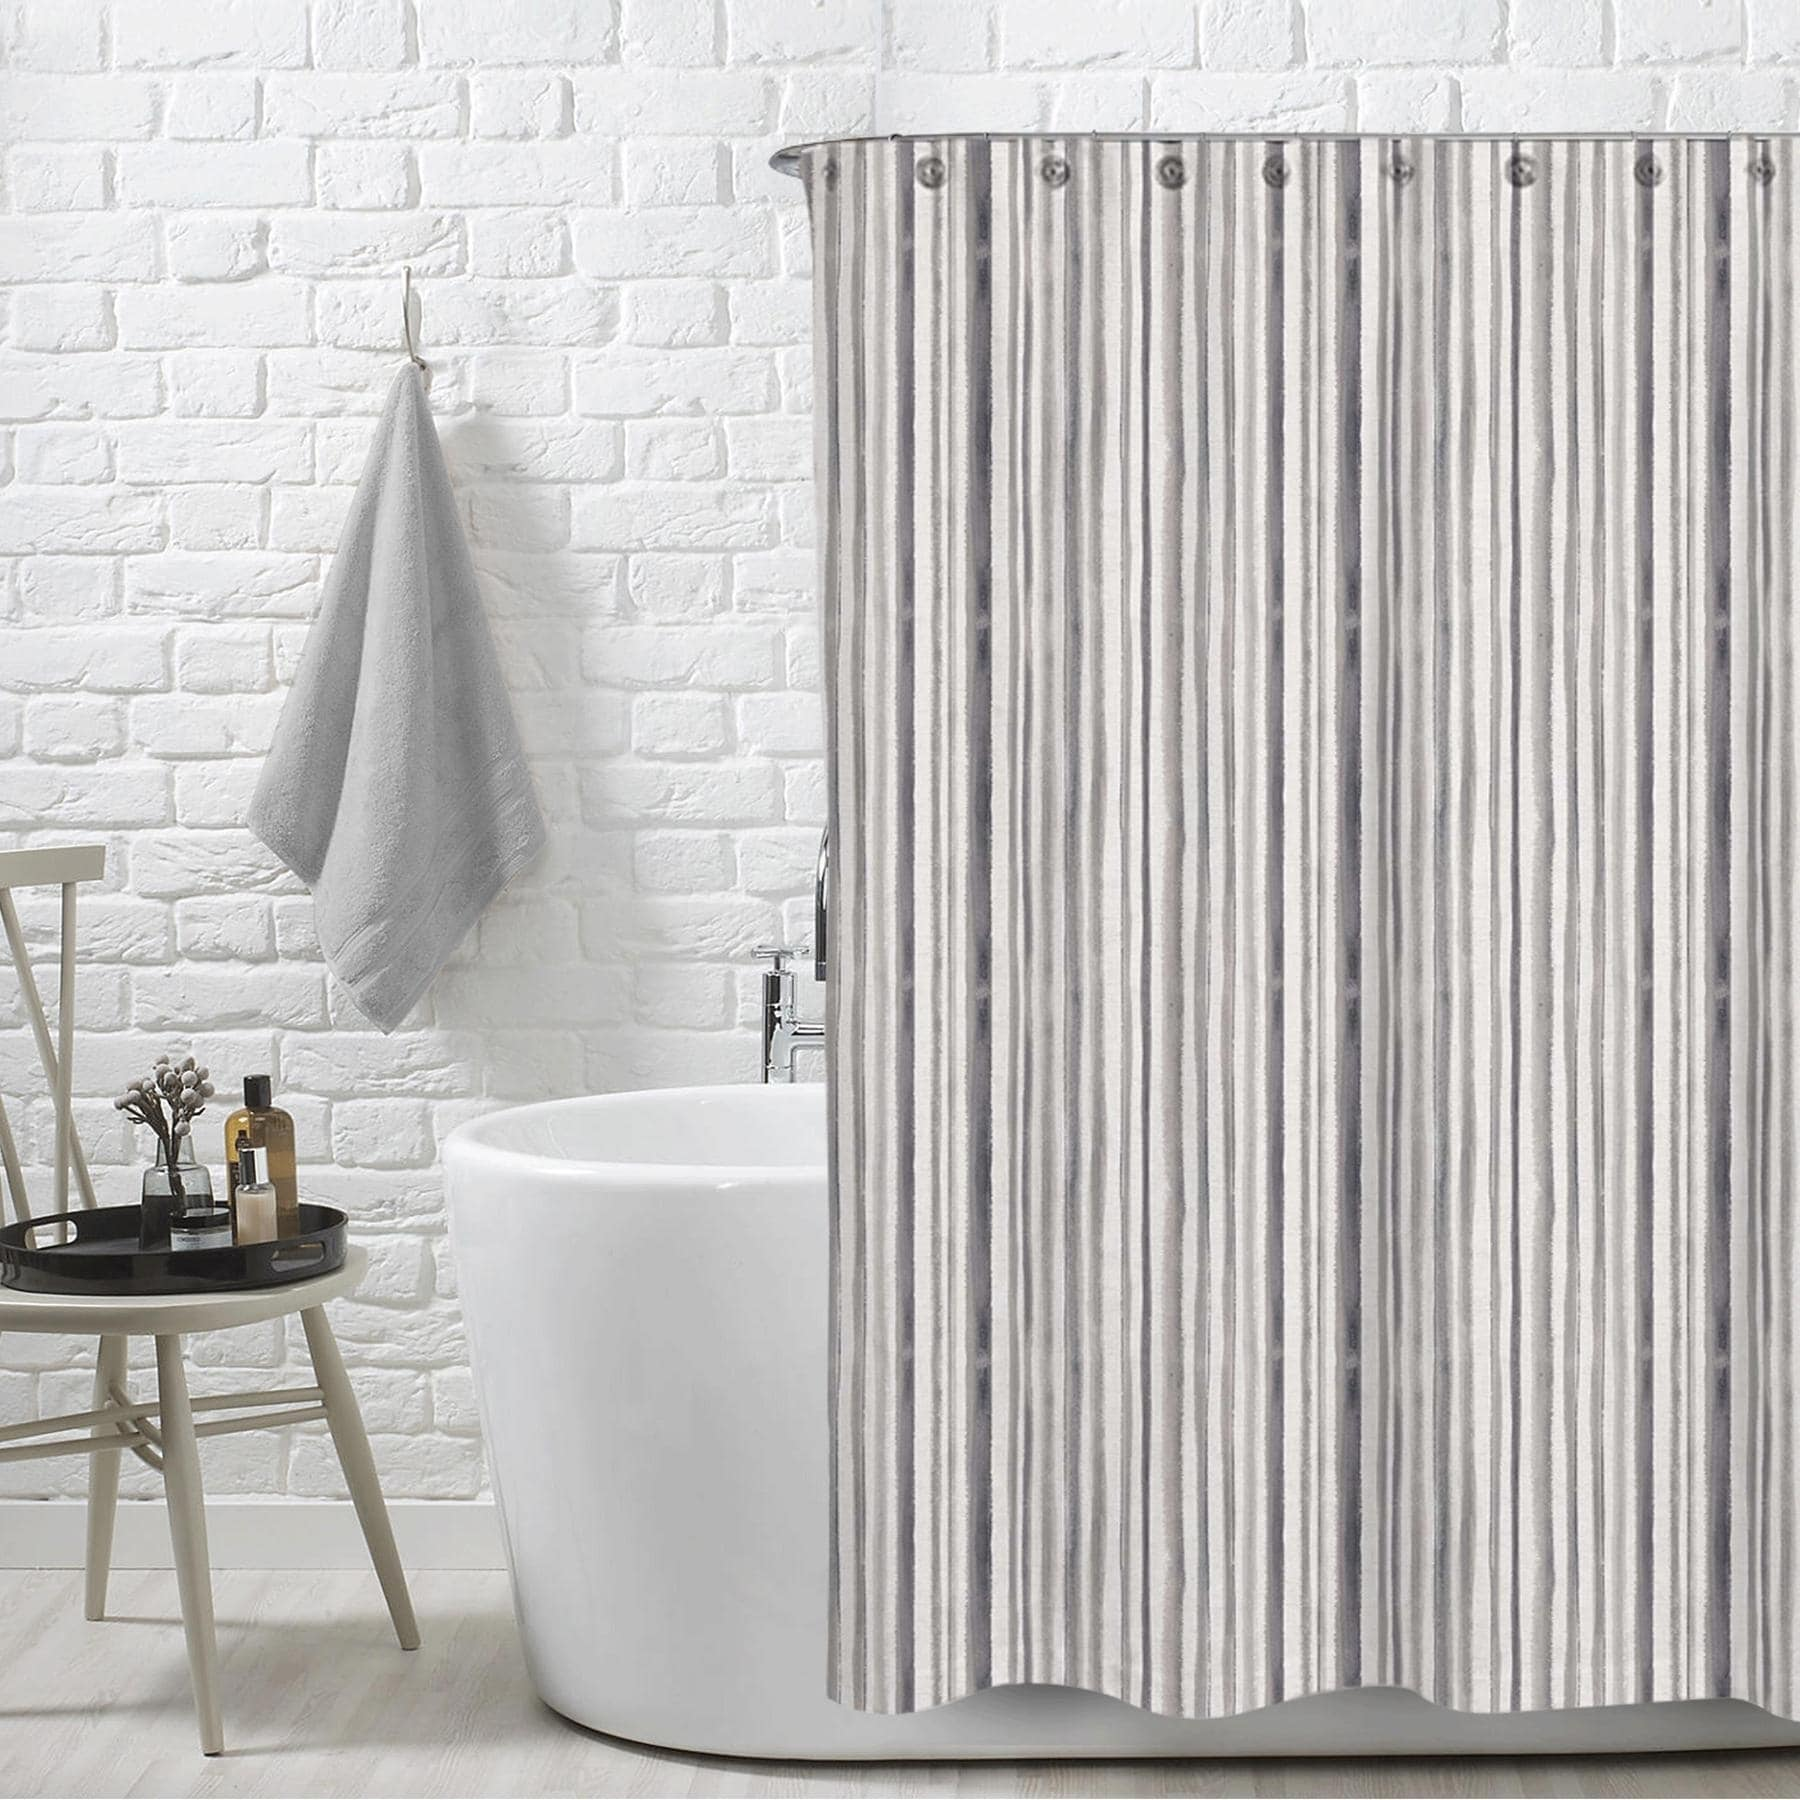 Stripe Neutral Mira Water Repellent Shower Curtain 72 X72 Free 12 Piece Shower Curtain Rings